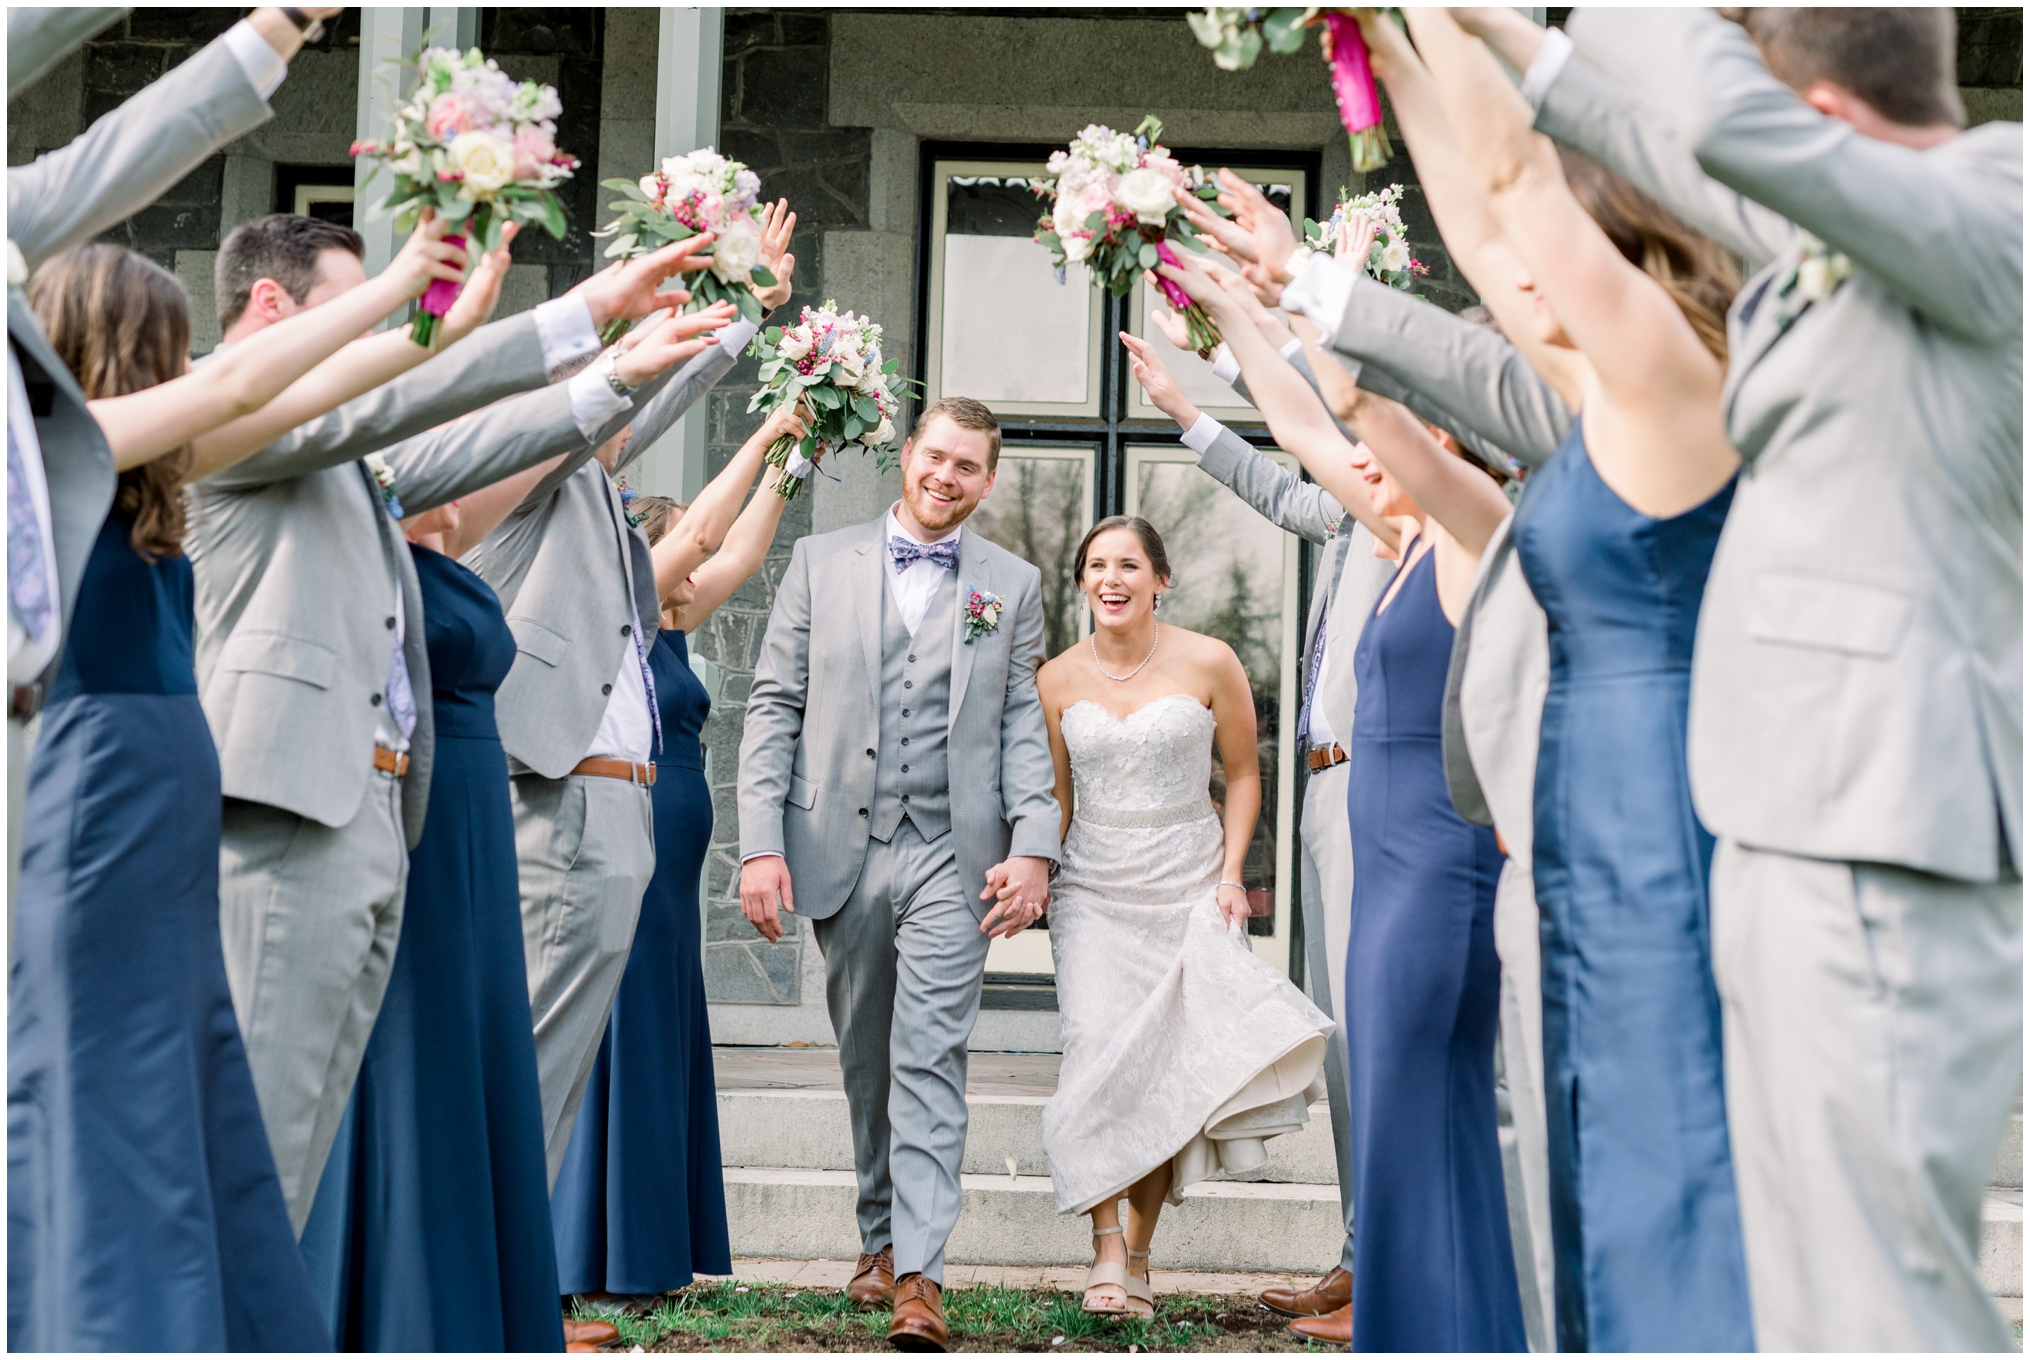 Krista Brackin Photography | April Wedding at The Carriage House at Rockwood Park_0067.jpg